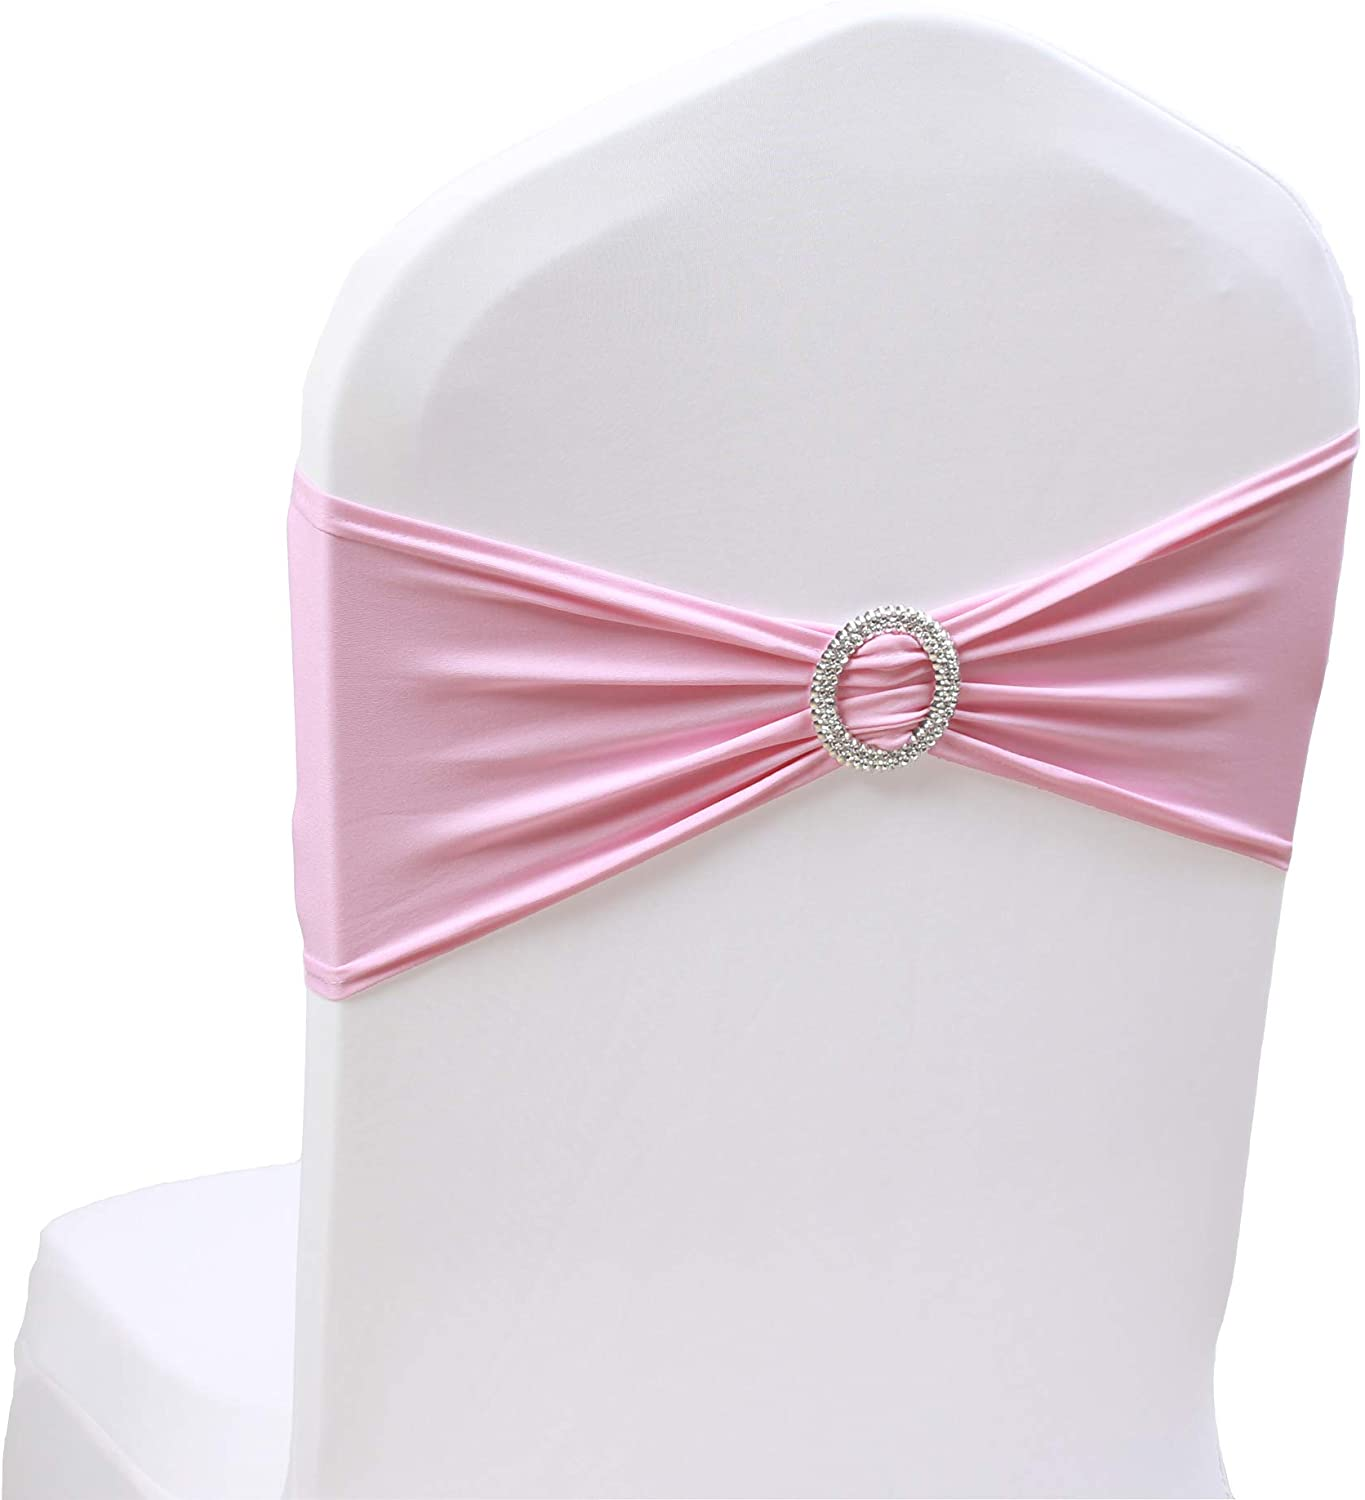 SheYang 100PCS Pink Stretch Chair Sashes Bows Elastic Chair Bands with Buckle Slider Sashes Bows for Wedding Hotel Banquet Birthday Party Decorations (100PCS, Pink)